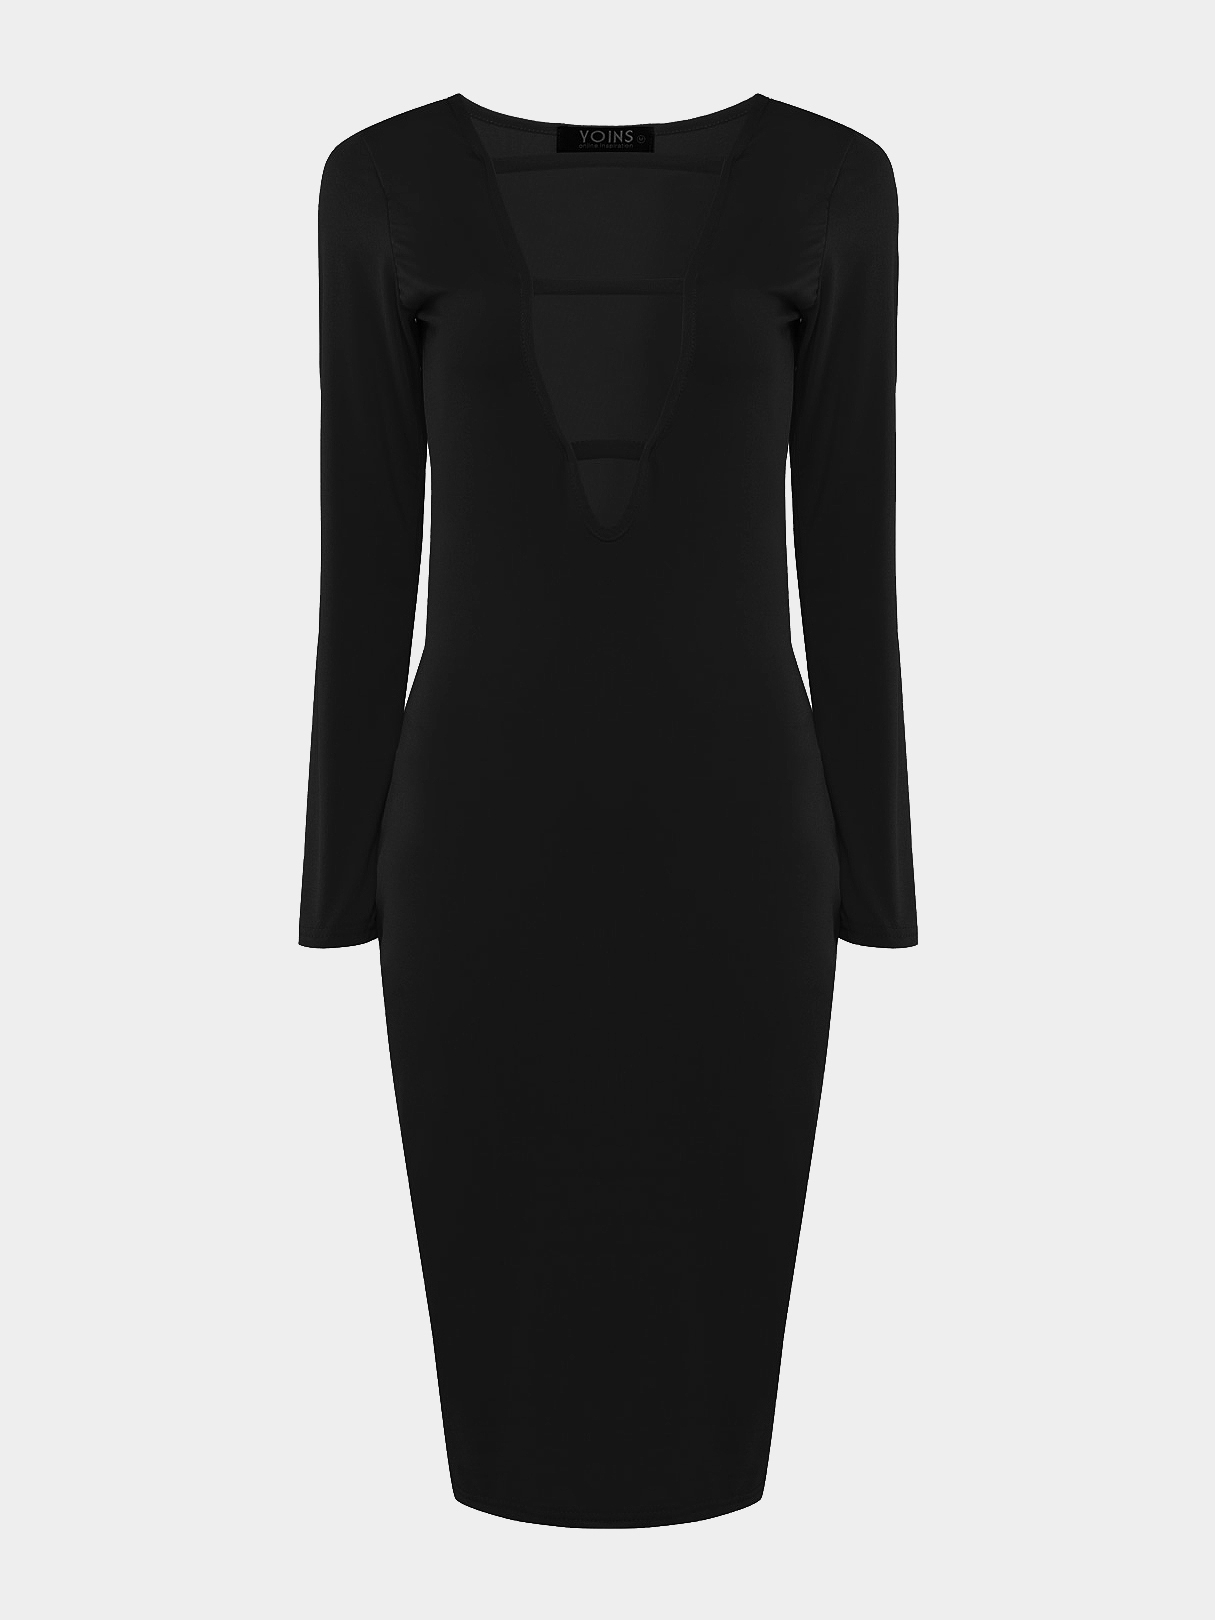 Black Body-Conscious Dress with Sexy Strap